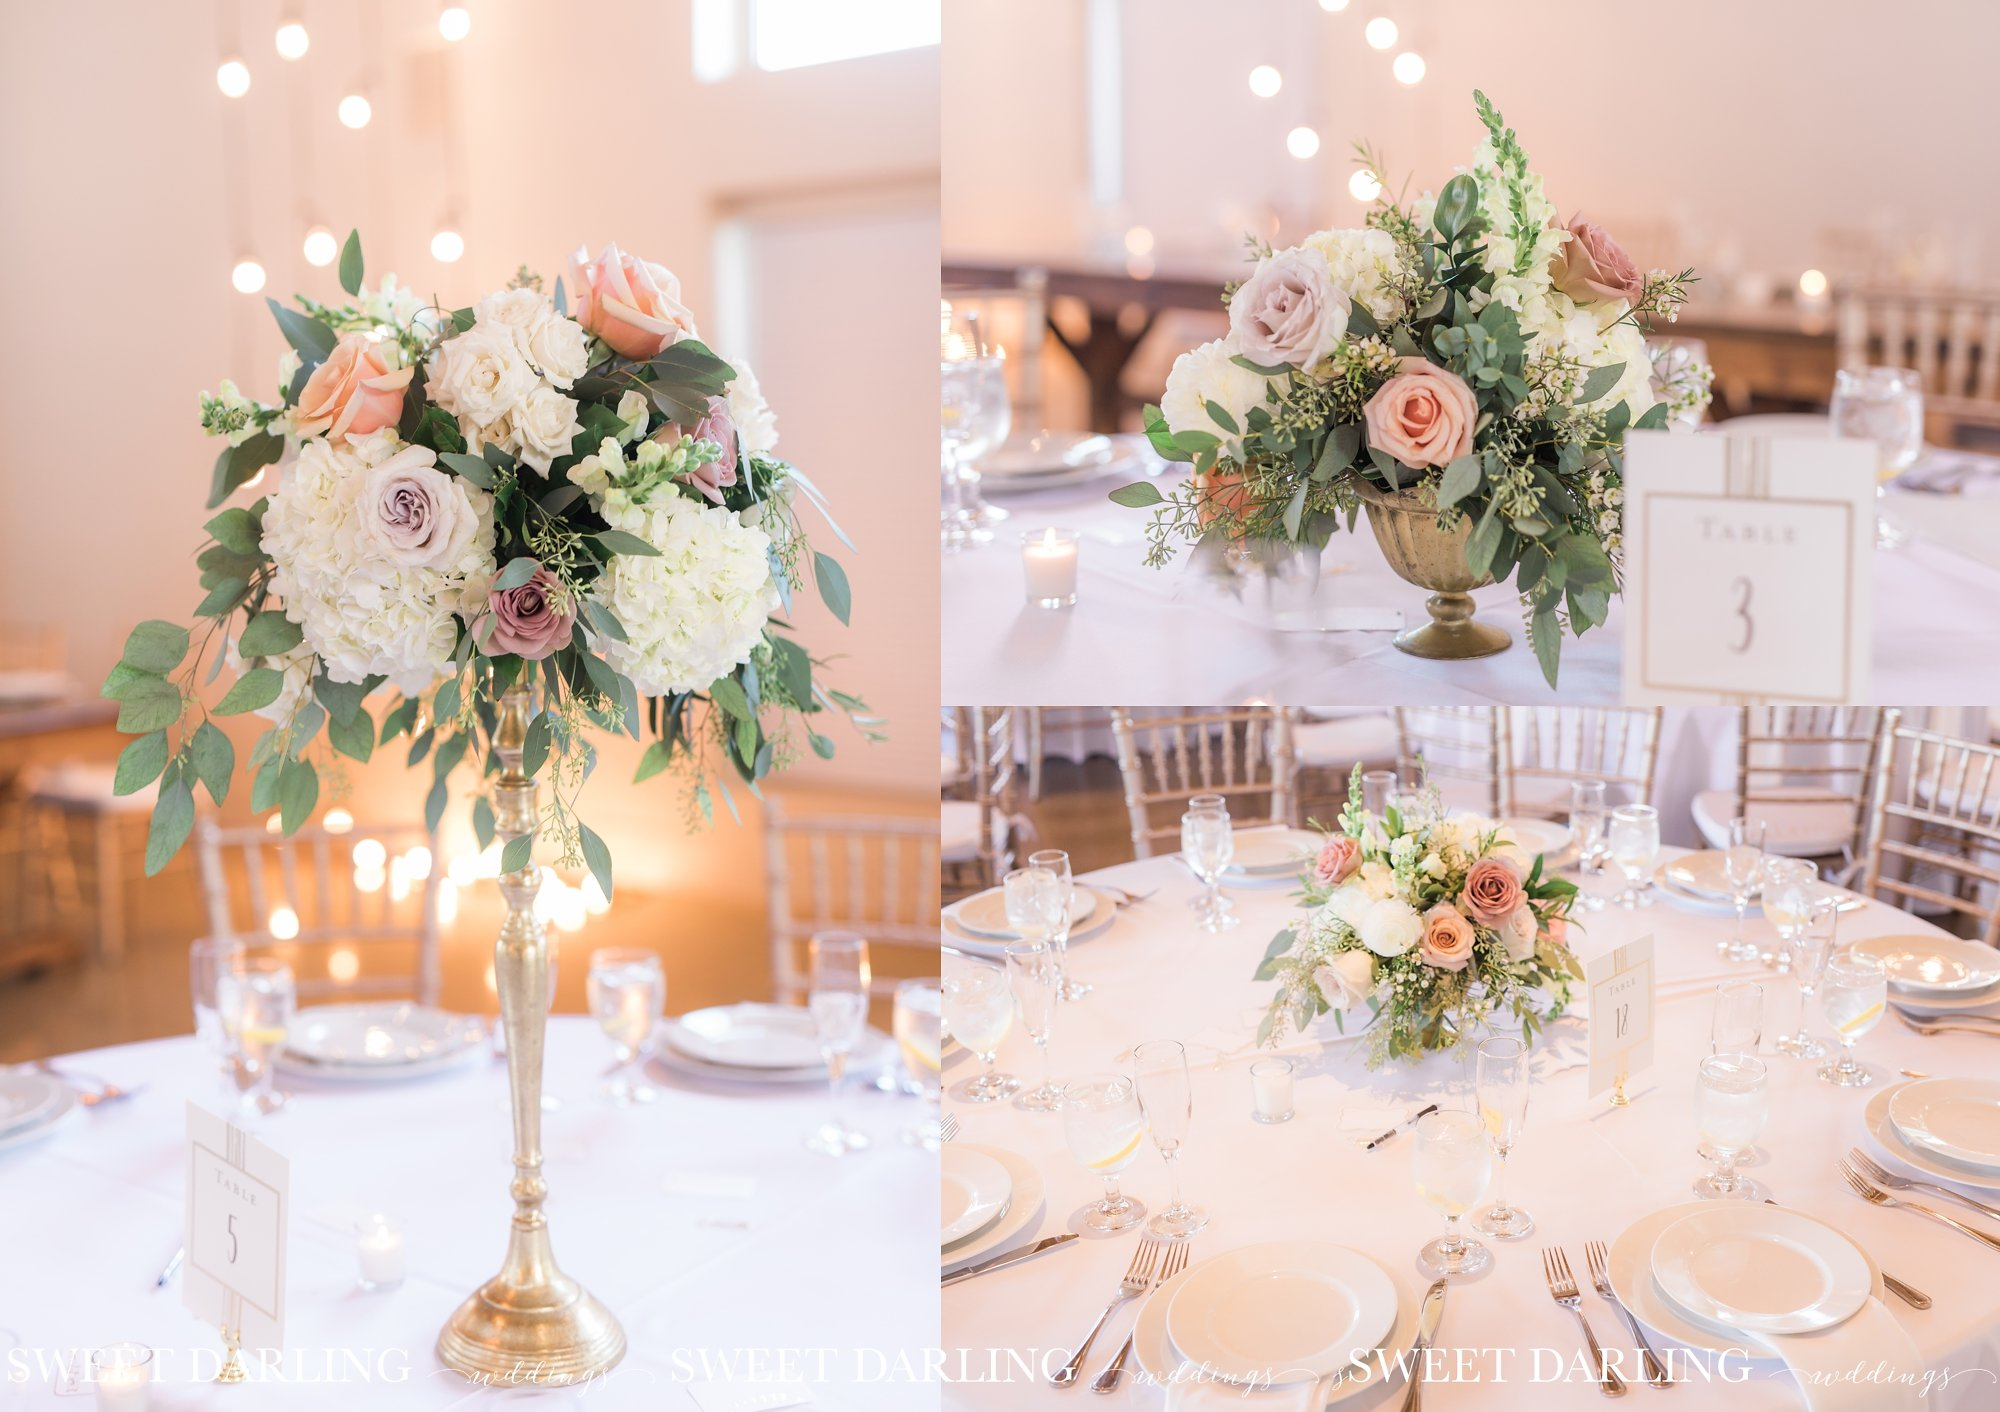 Beautiful floral centerpieces at wedding reception